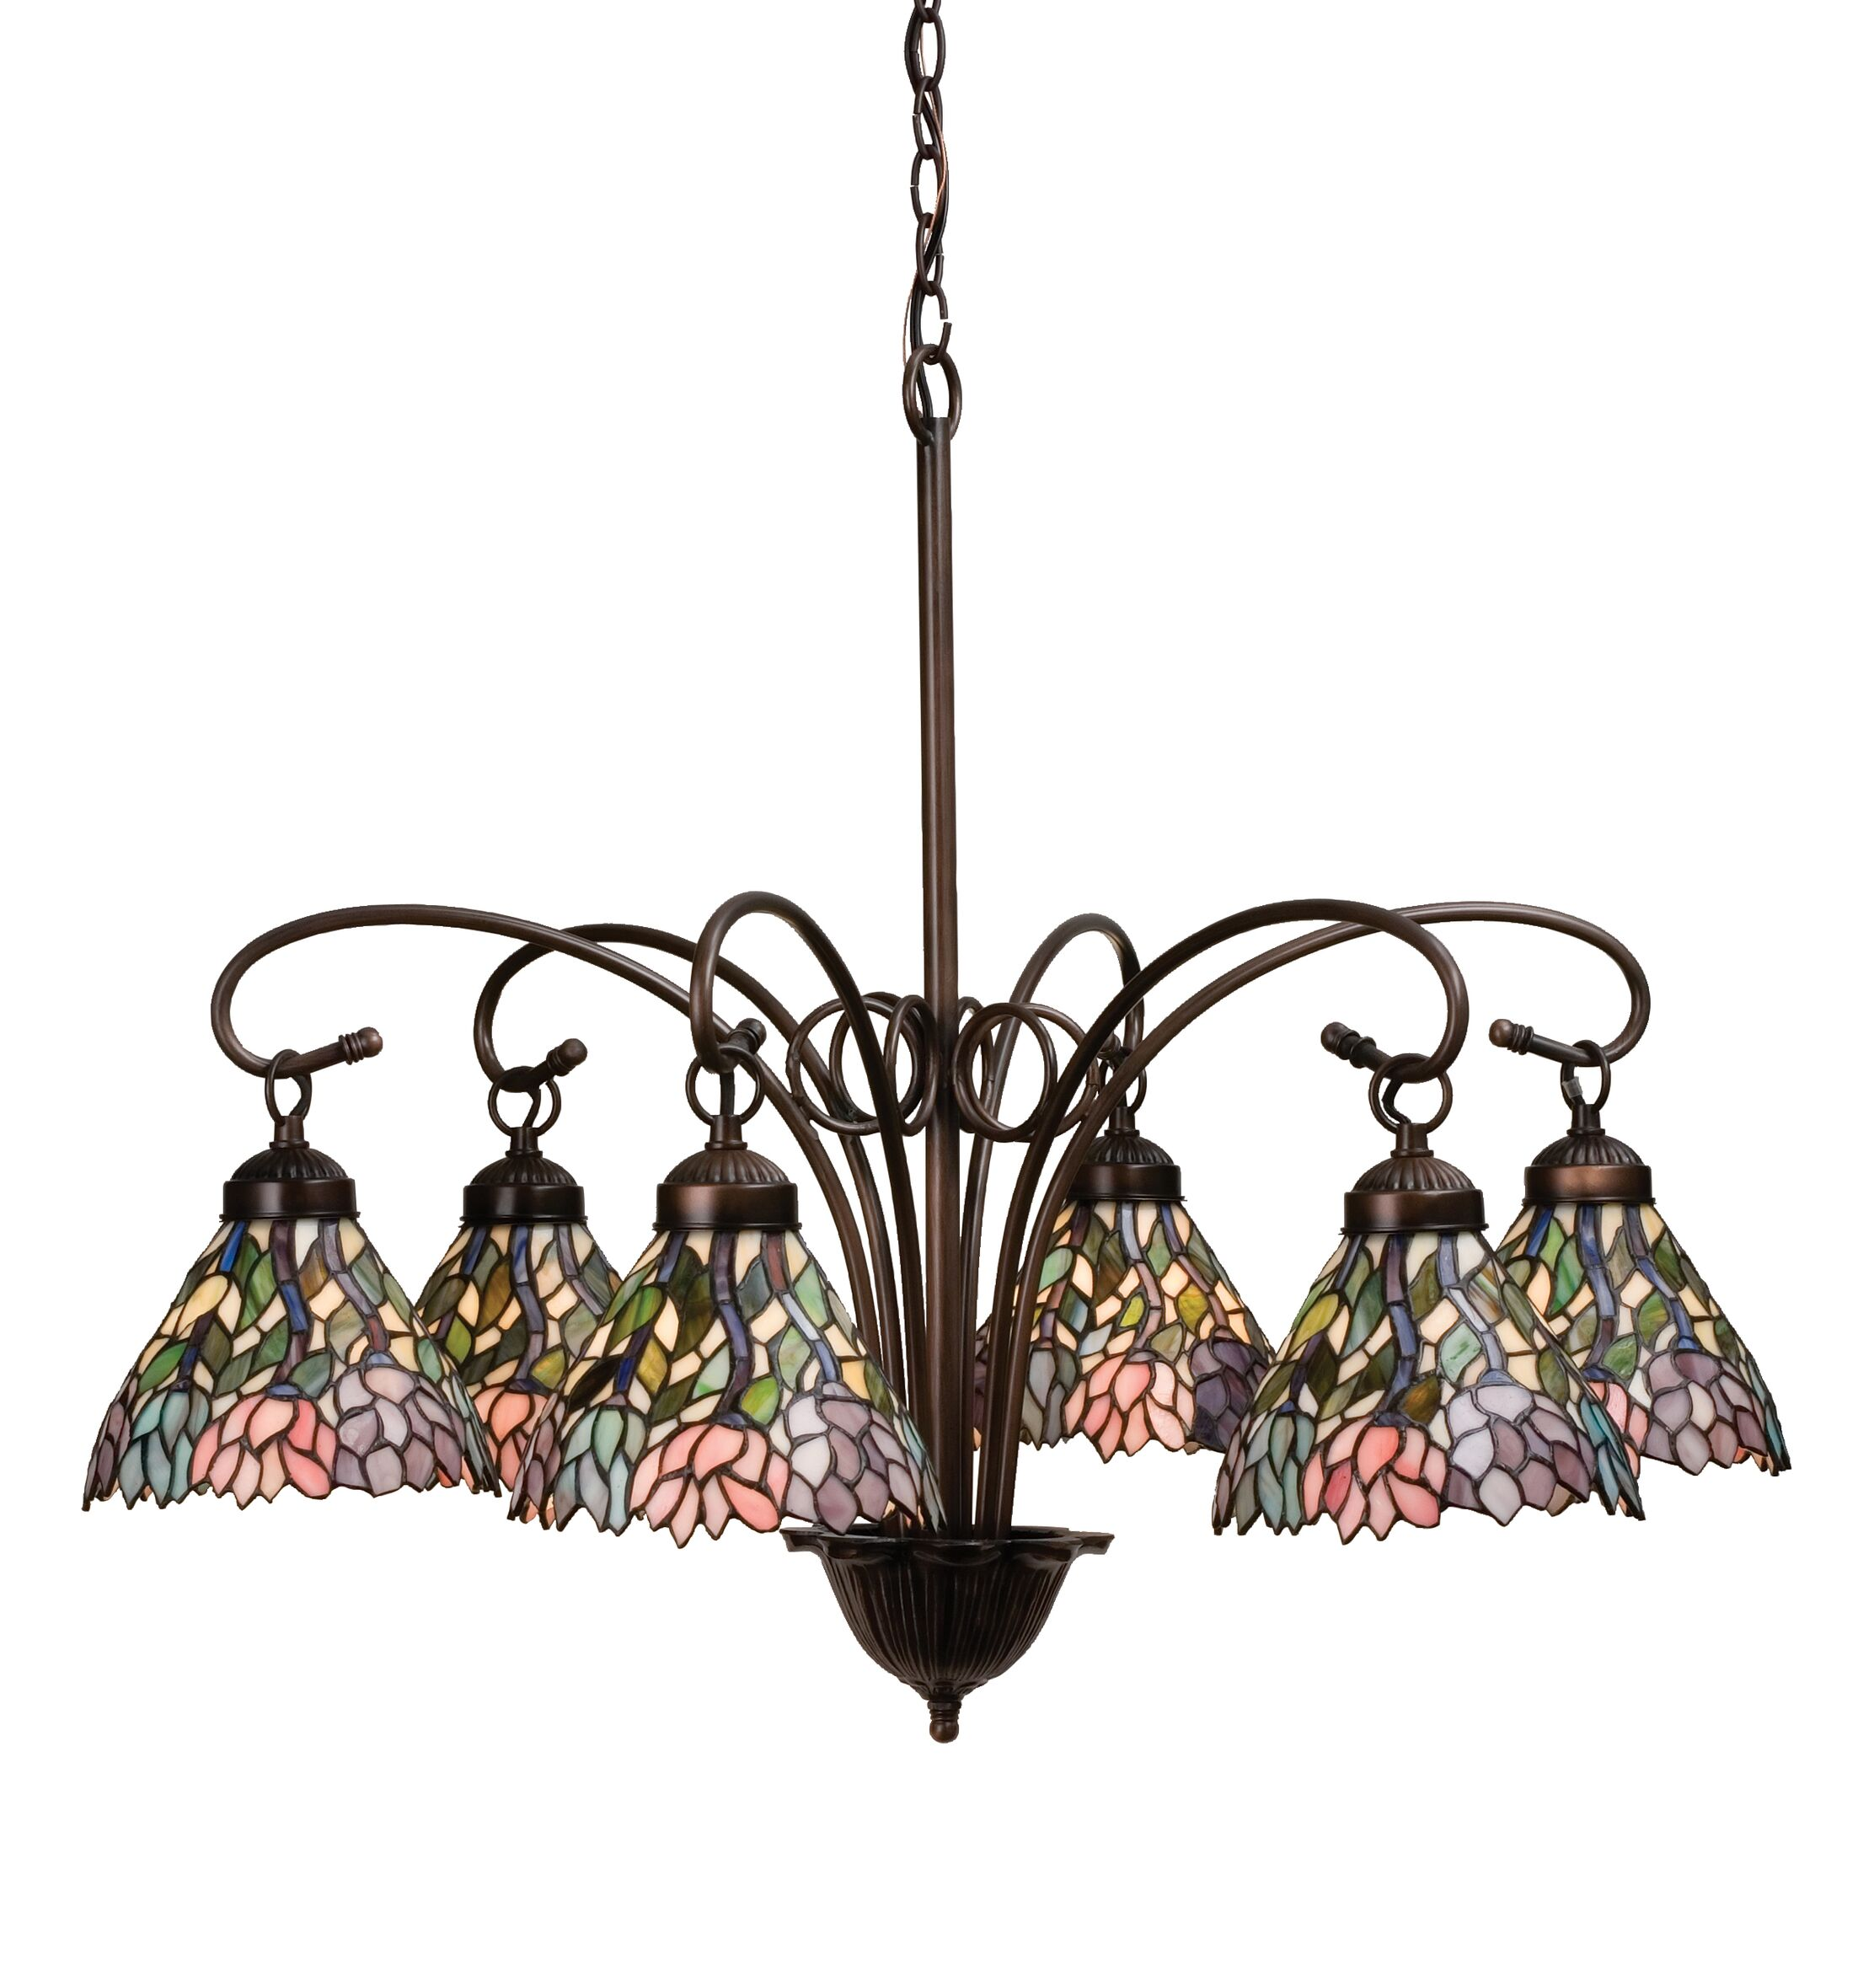 Victorian Tiffany Wisteria 6-Light Shaded Chandelier